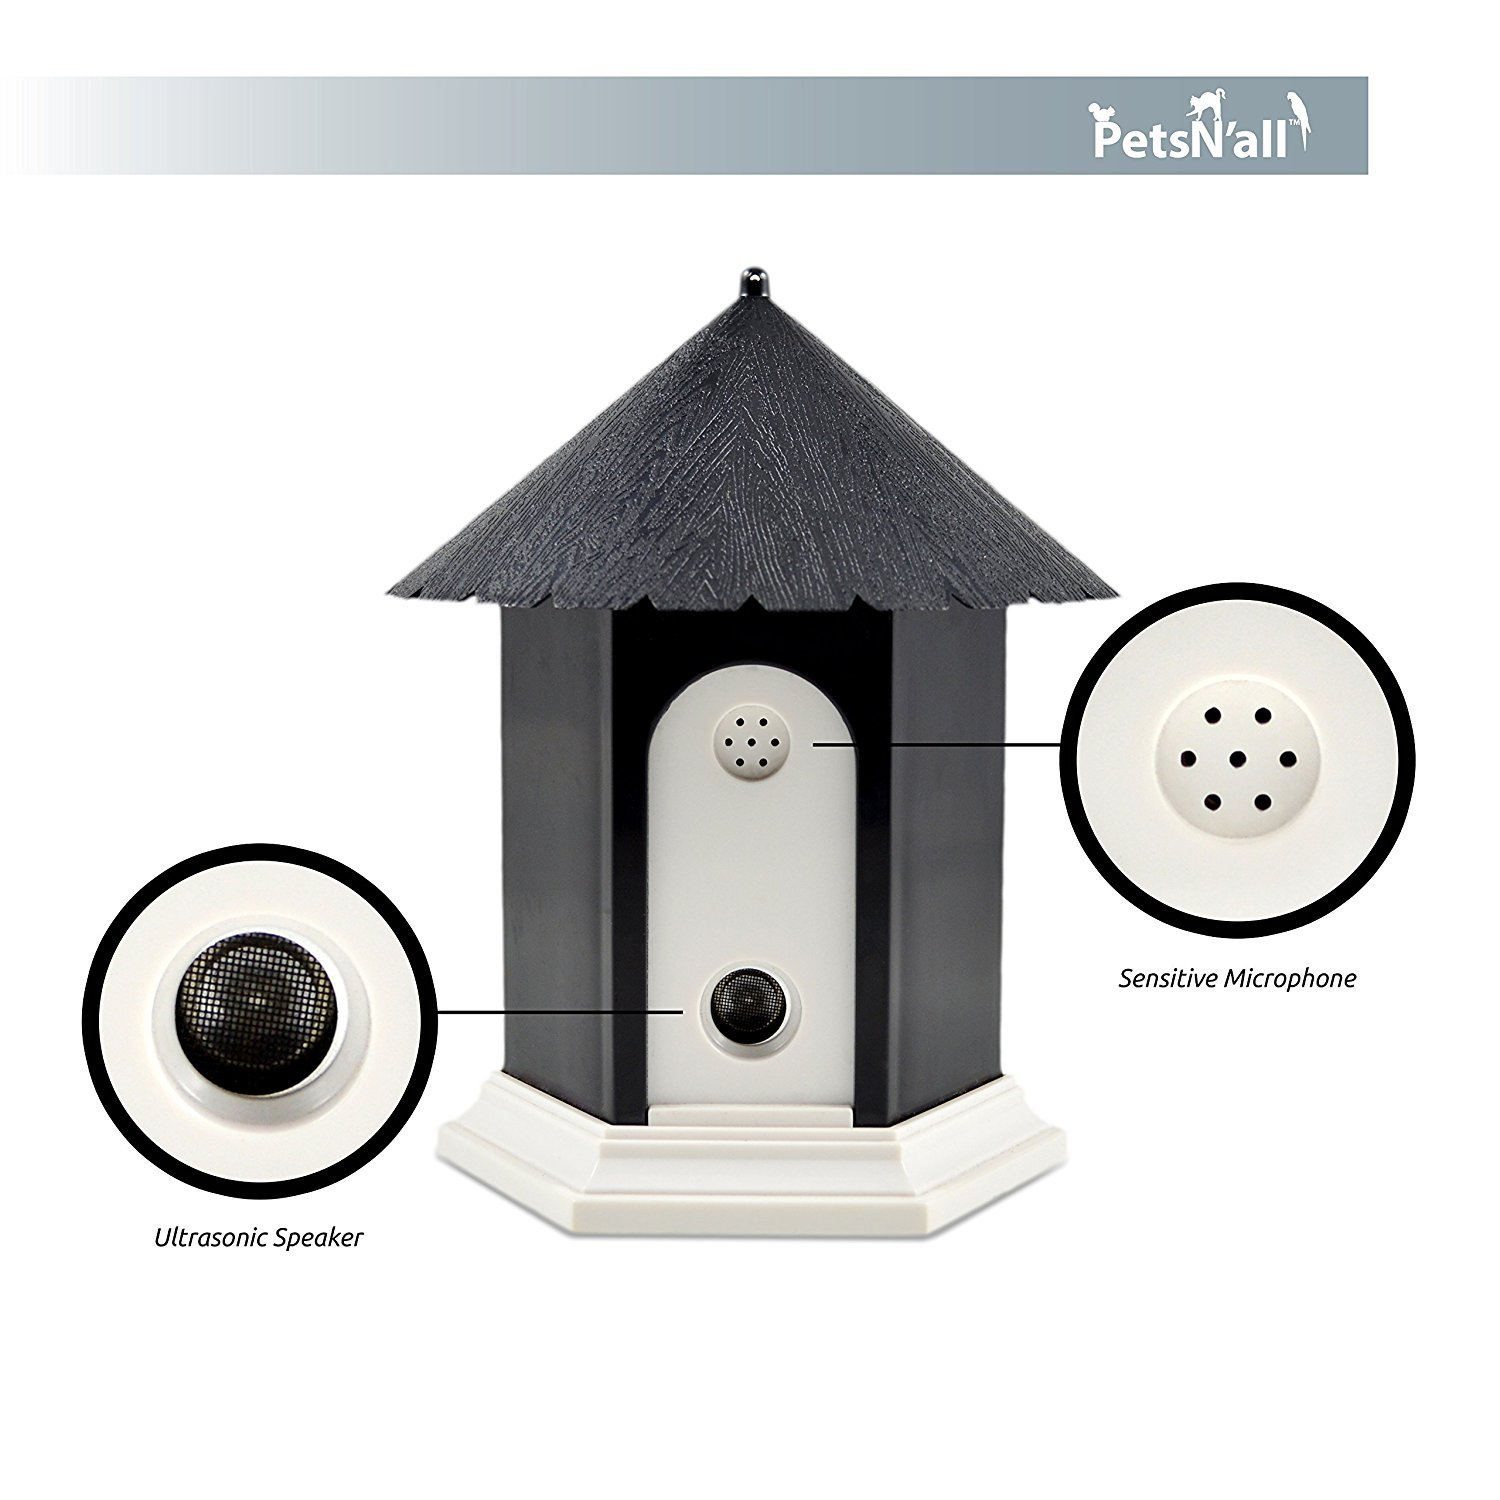 PetsN'all Upgraded Ultrasonic Outdoor Dog Bark Controller in Anti-Bark Training Birdhouse Shape by PetsN'all